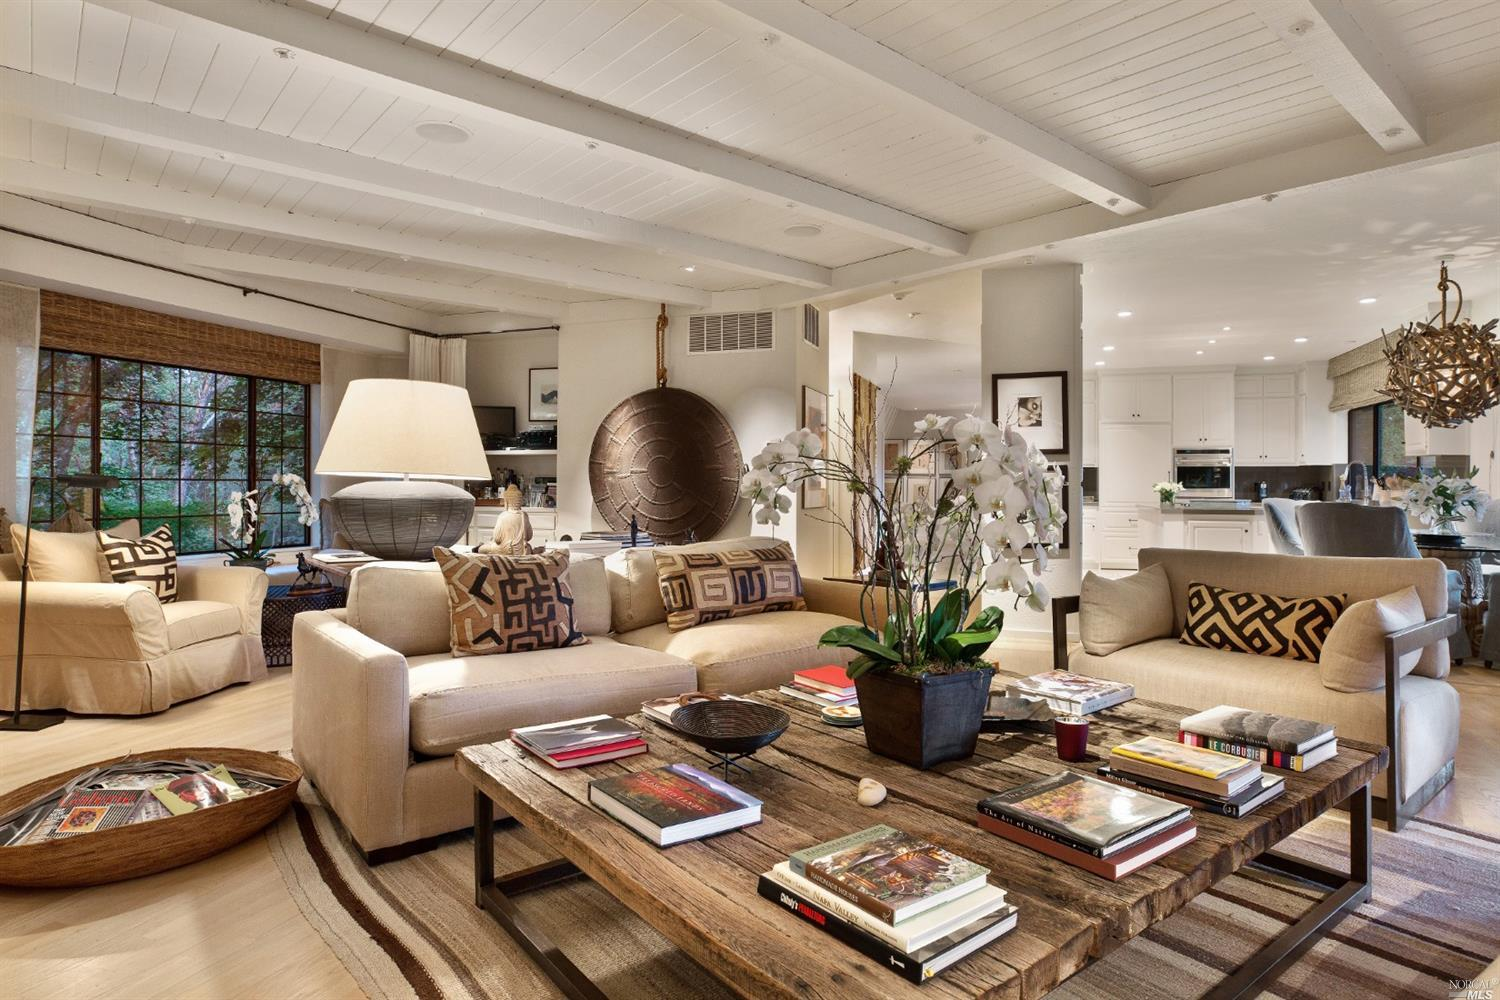 Inside Robert Redford's house for sale in St. Helene reveals an open and airy cozy living area